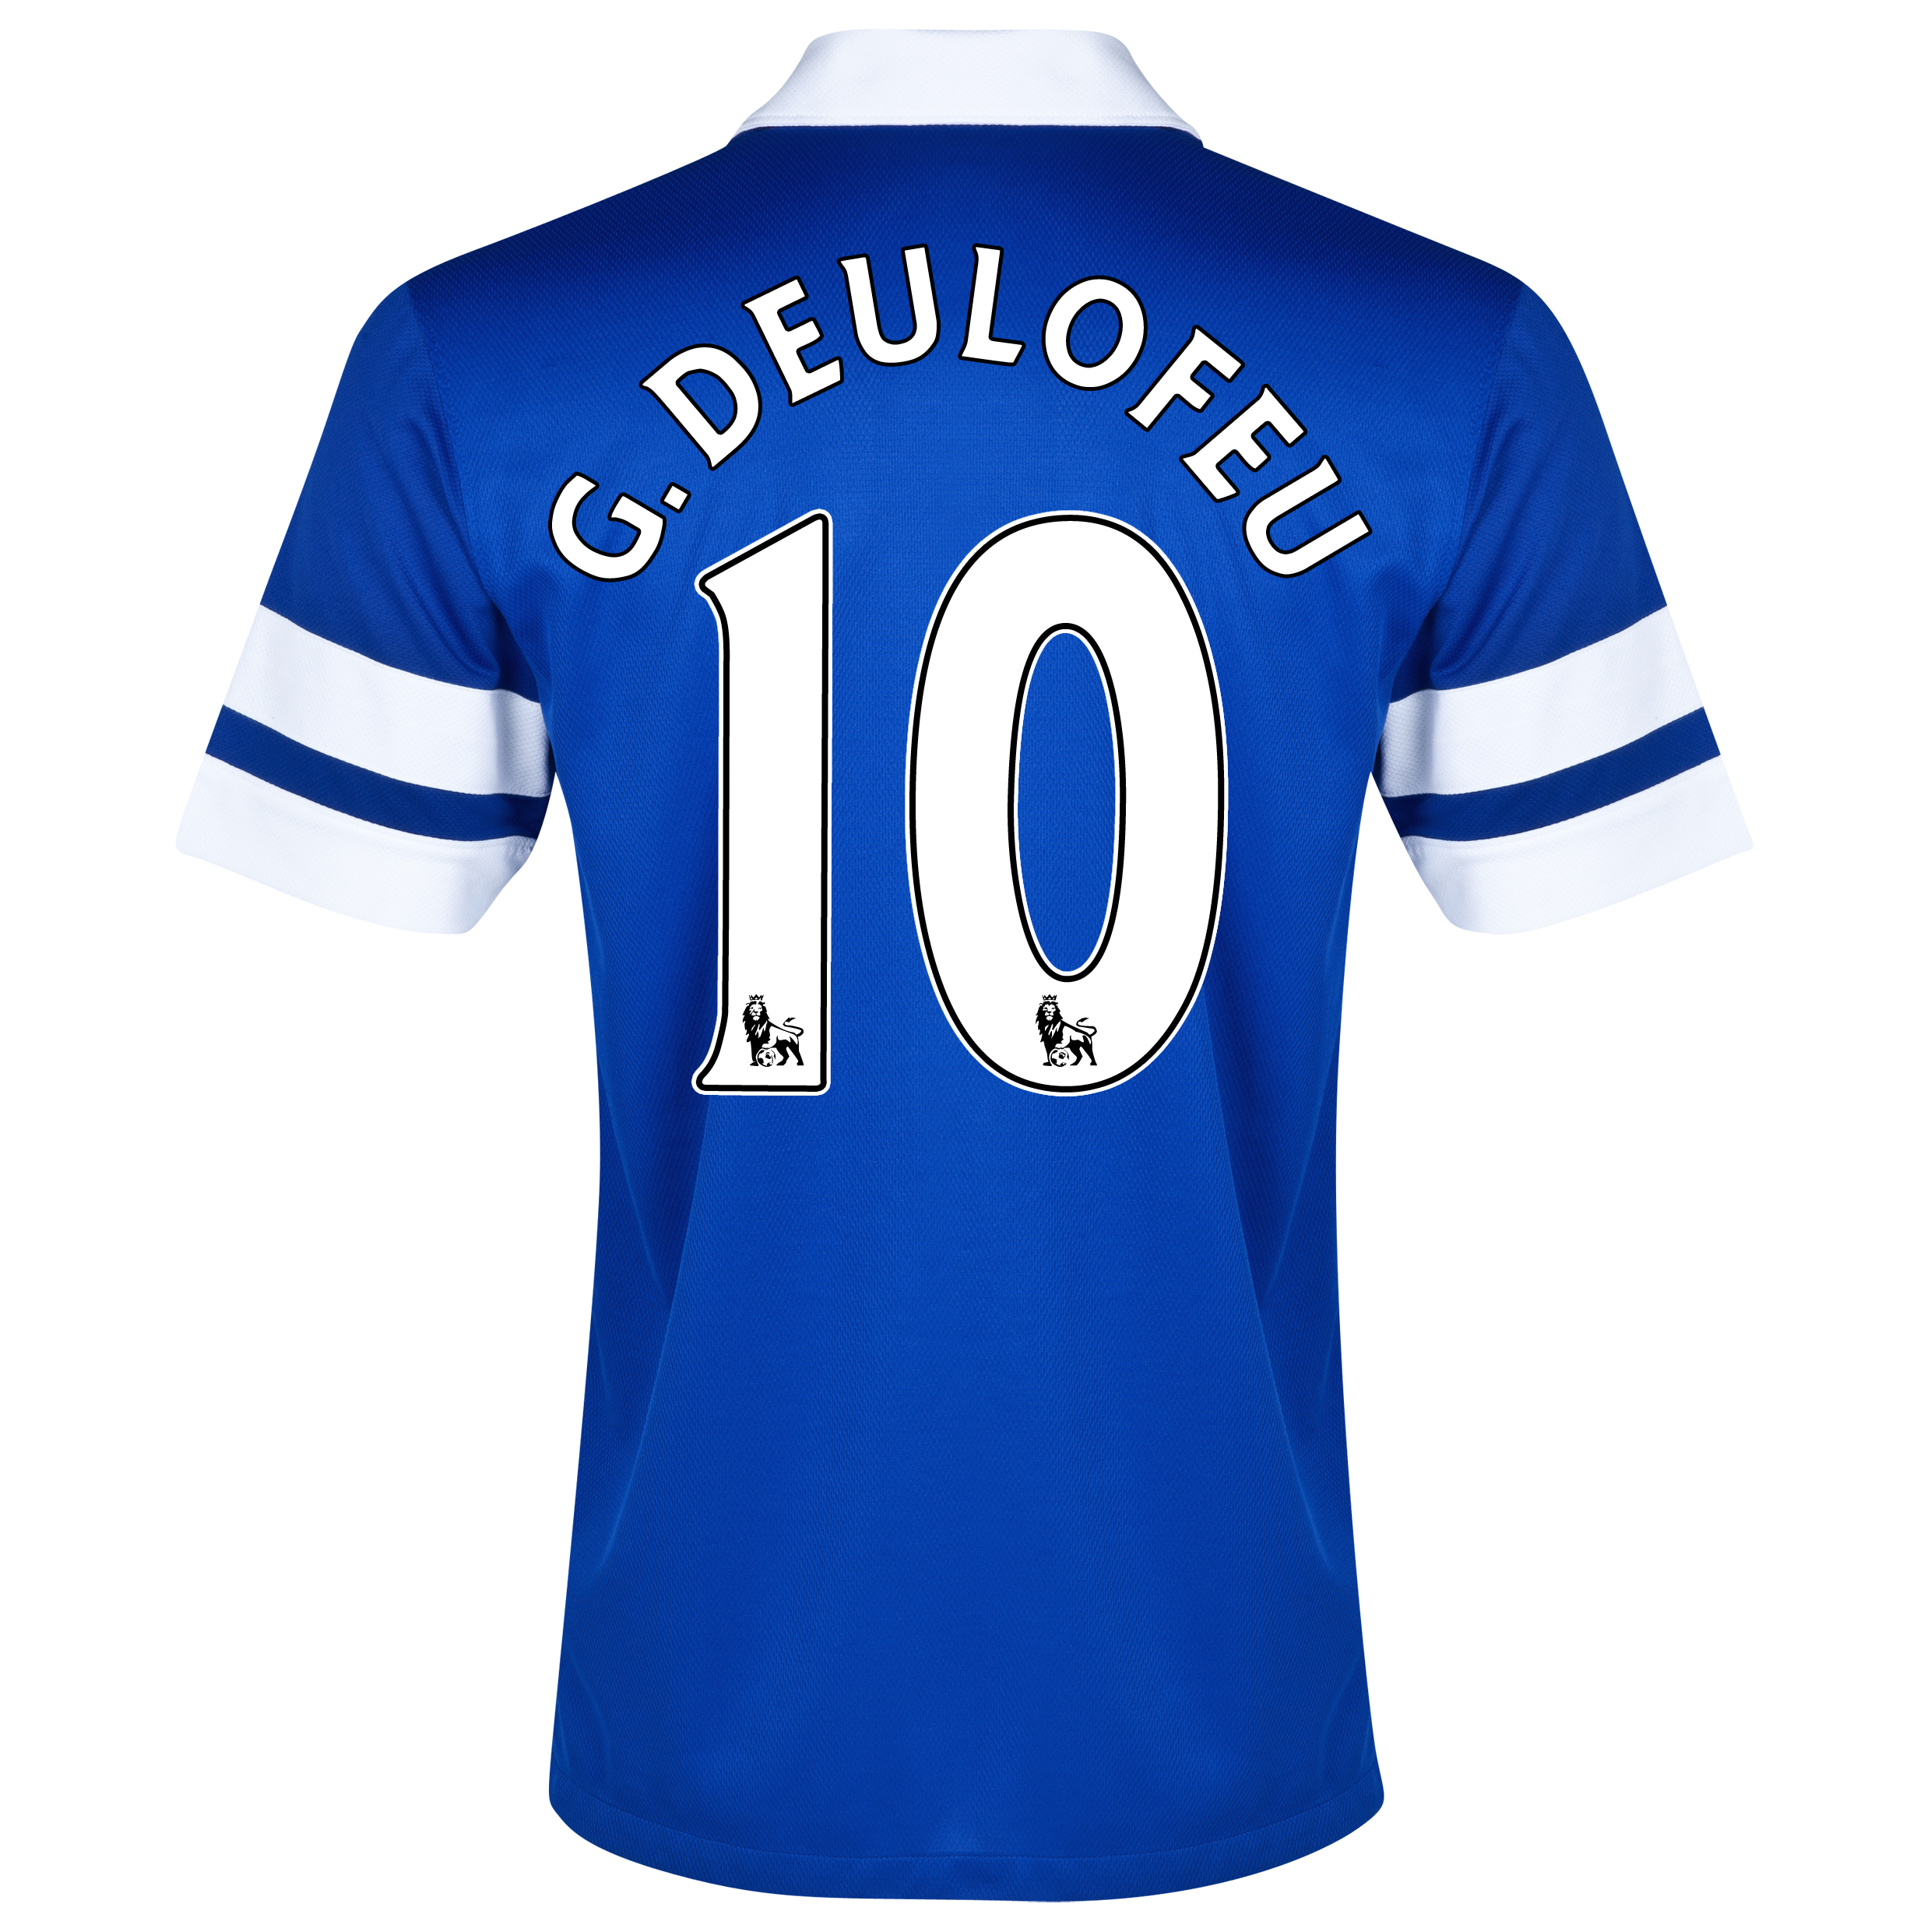 Everton Home Shirt 2013/14 Blue with G.Deulofeu 10 printing